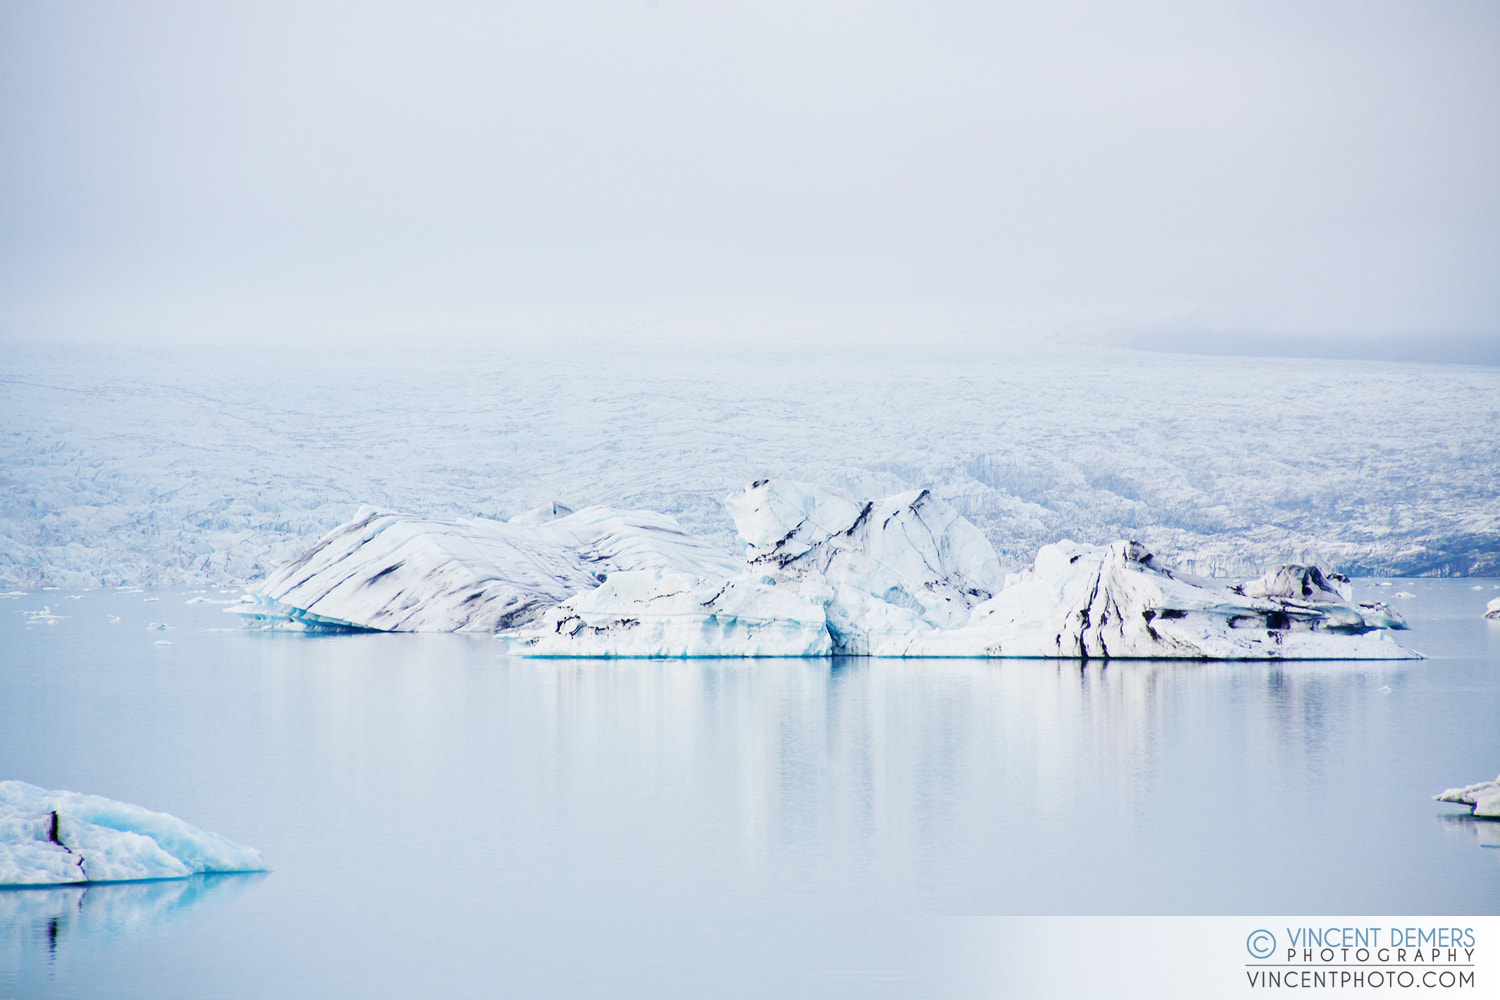 Photograph Iceberg in Jökulsárlón, a glacial lagoon in Iceland by Vincent Demers on 500px